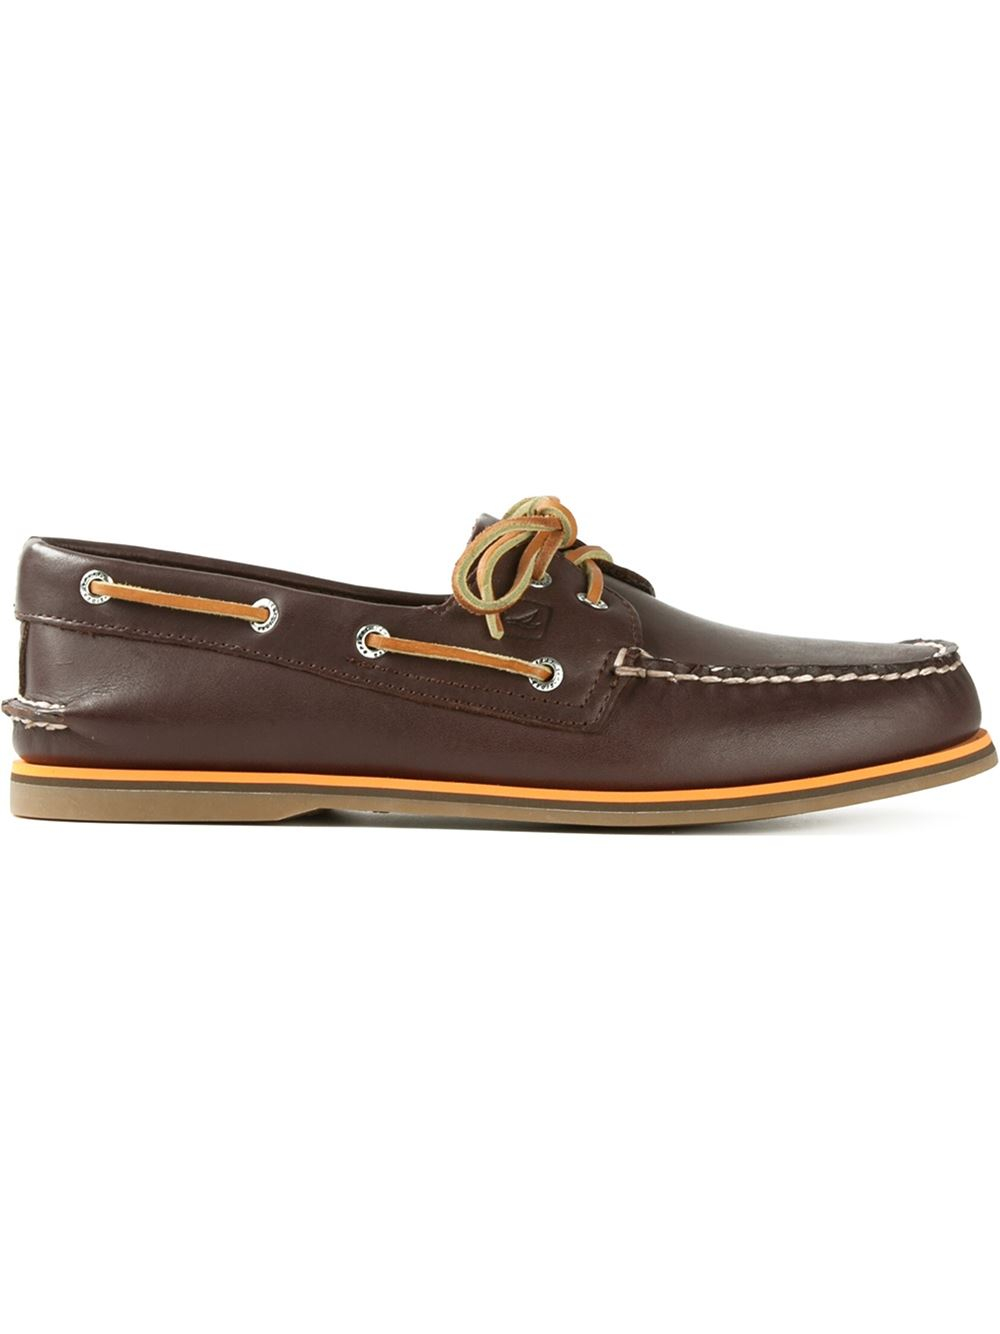 Sperry Deck Shoes Womens